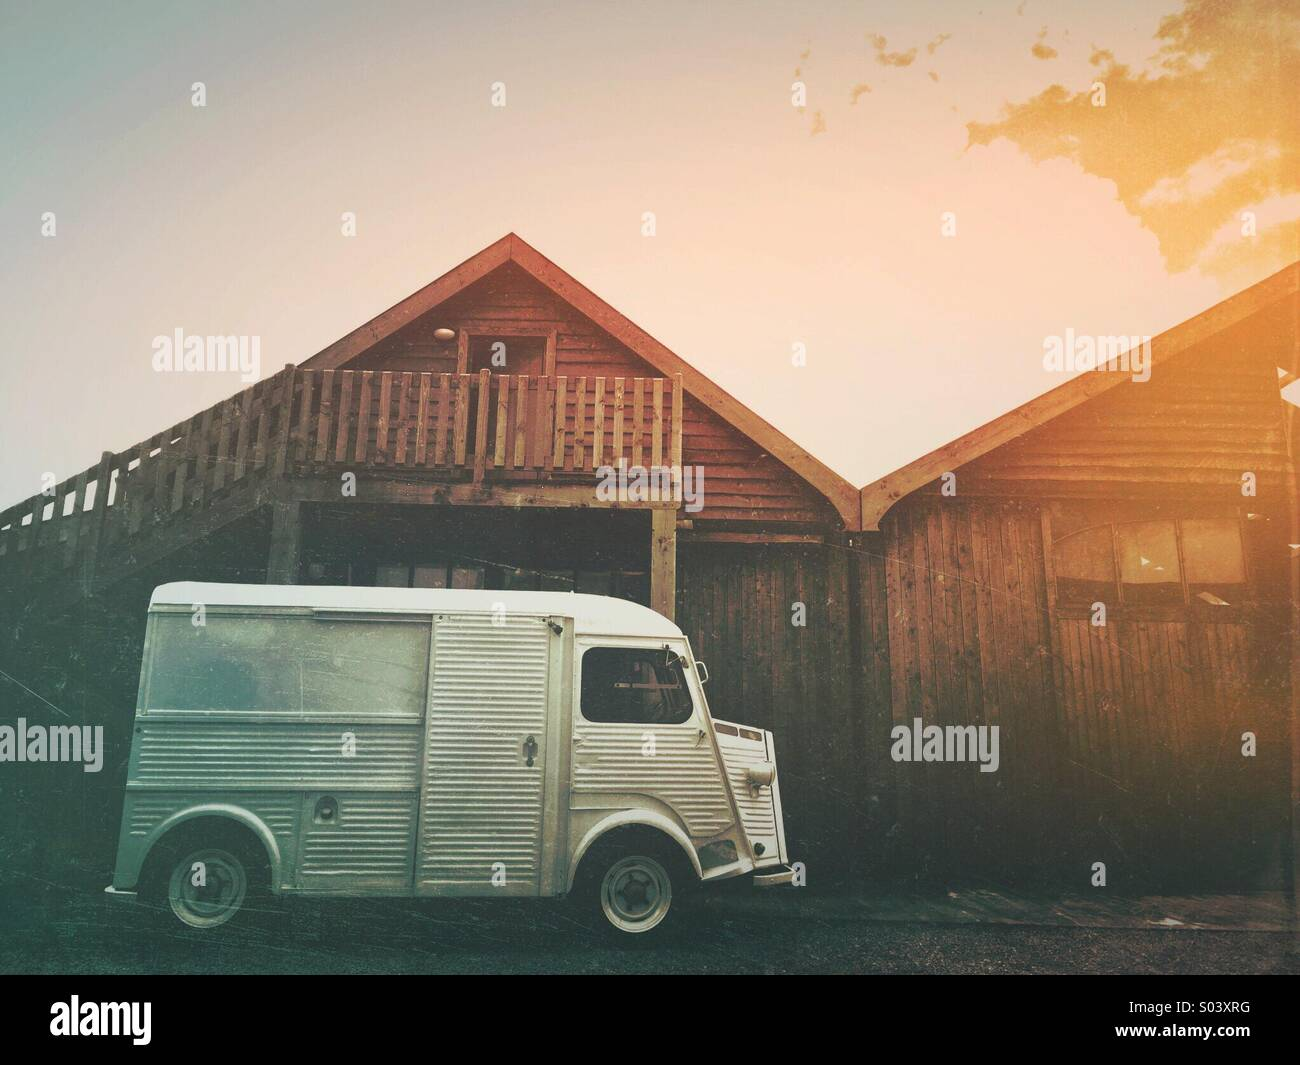 Vintage van parked outside a rustic Eco wooden building in Cornwall - Stock Image